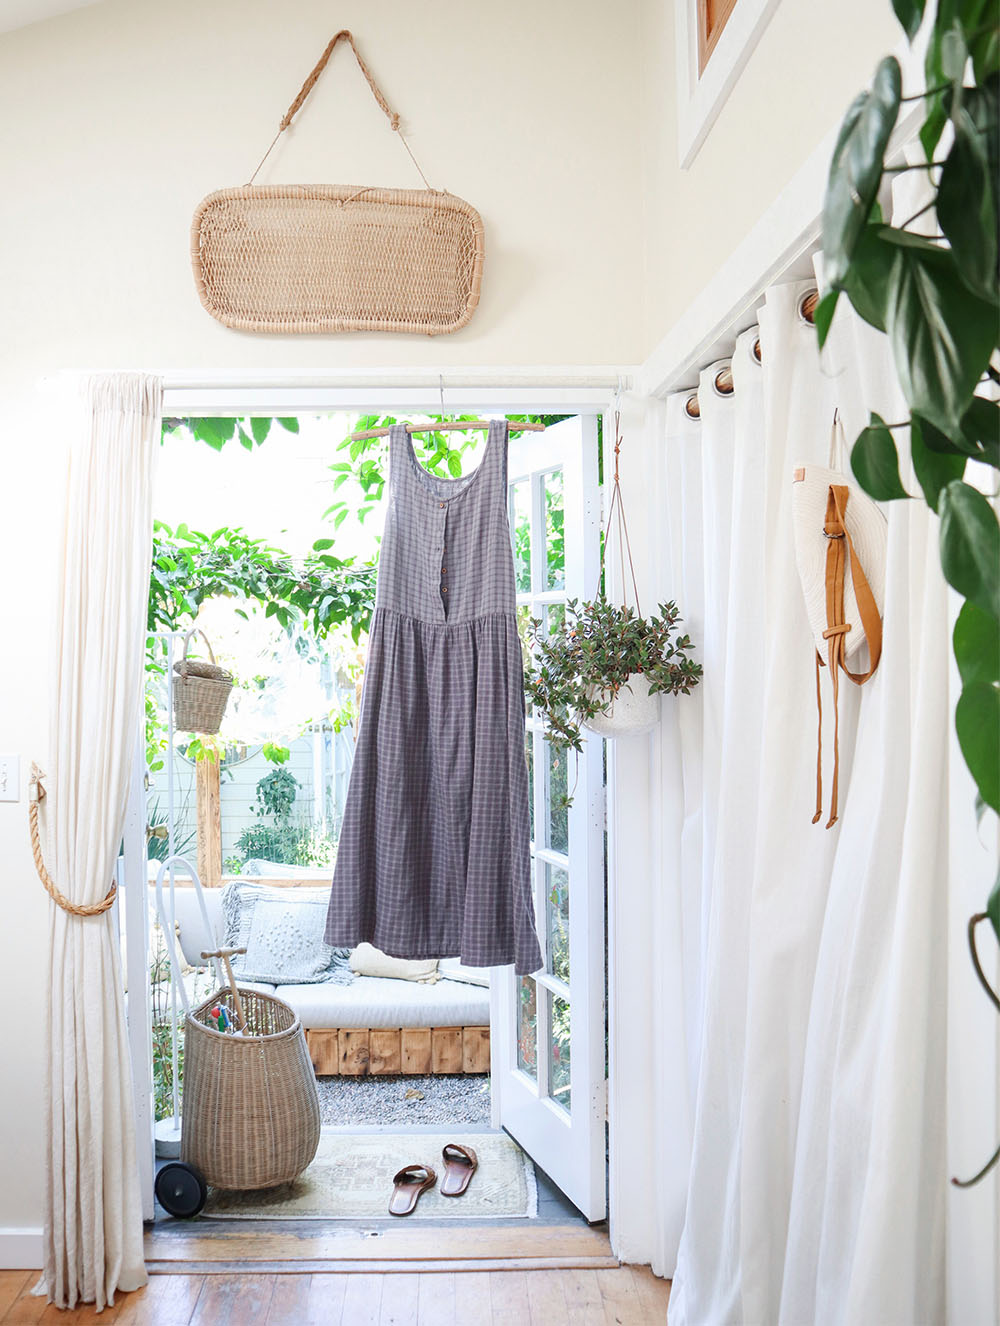 small_space_sustainability_whitney_leigh_morris_tiny_canal_cottage_olli_ella_1.JPG